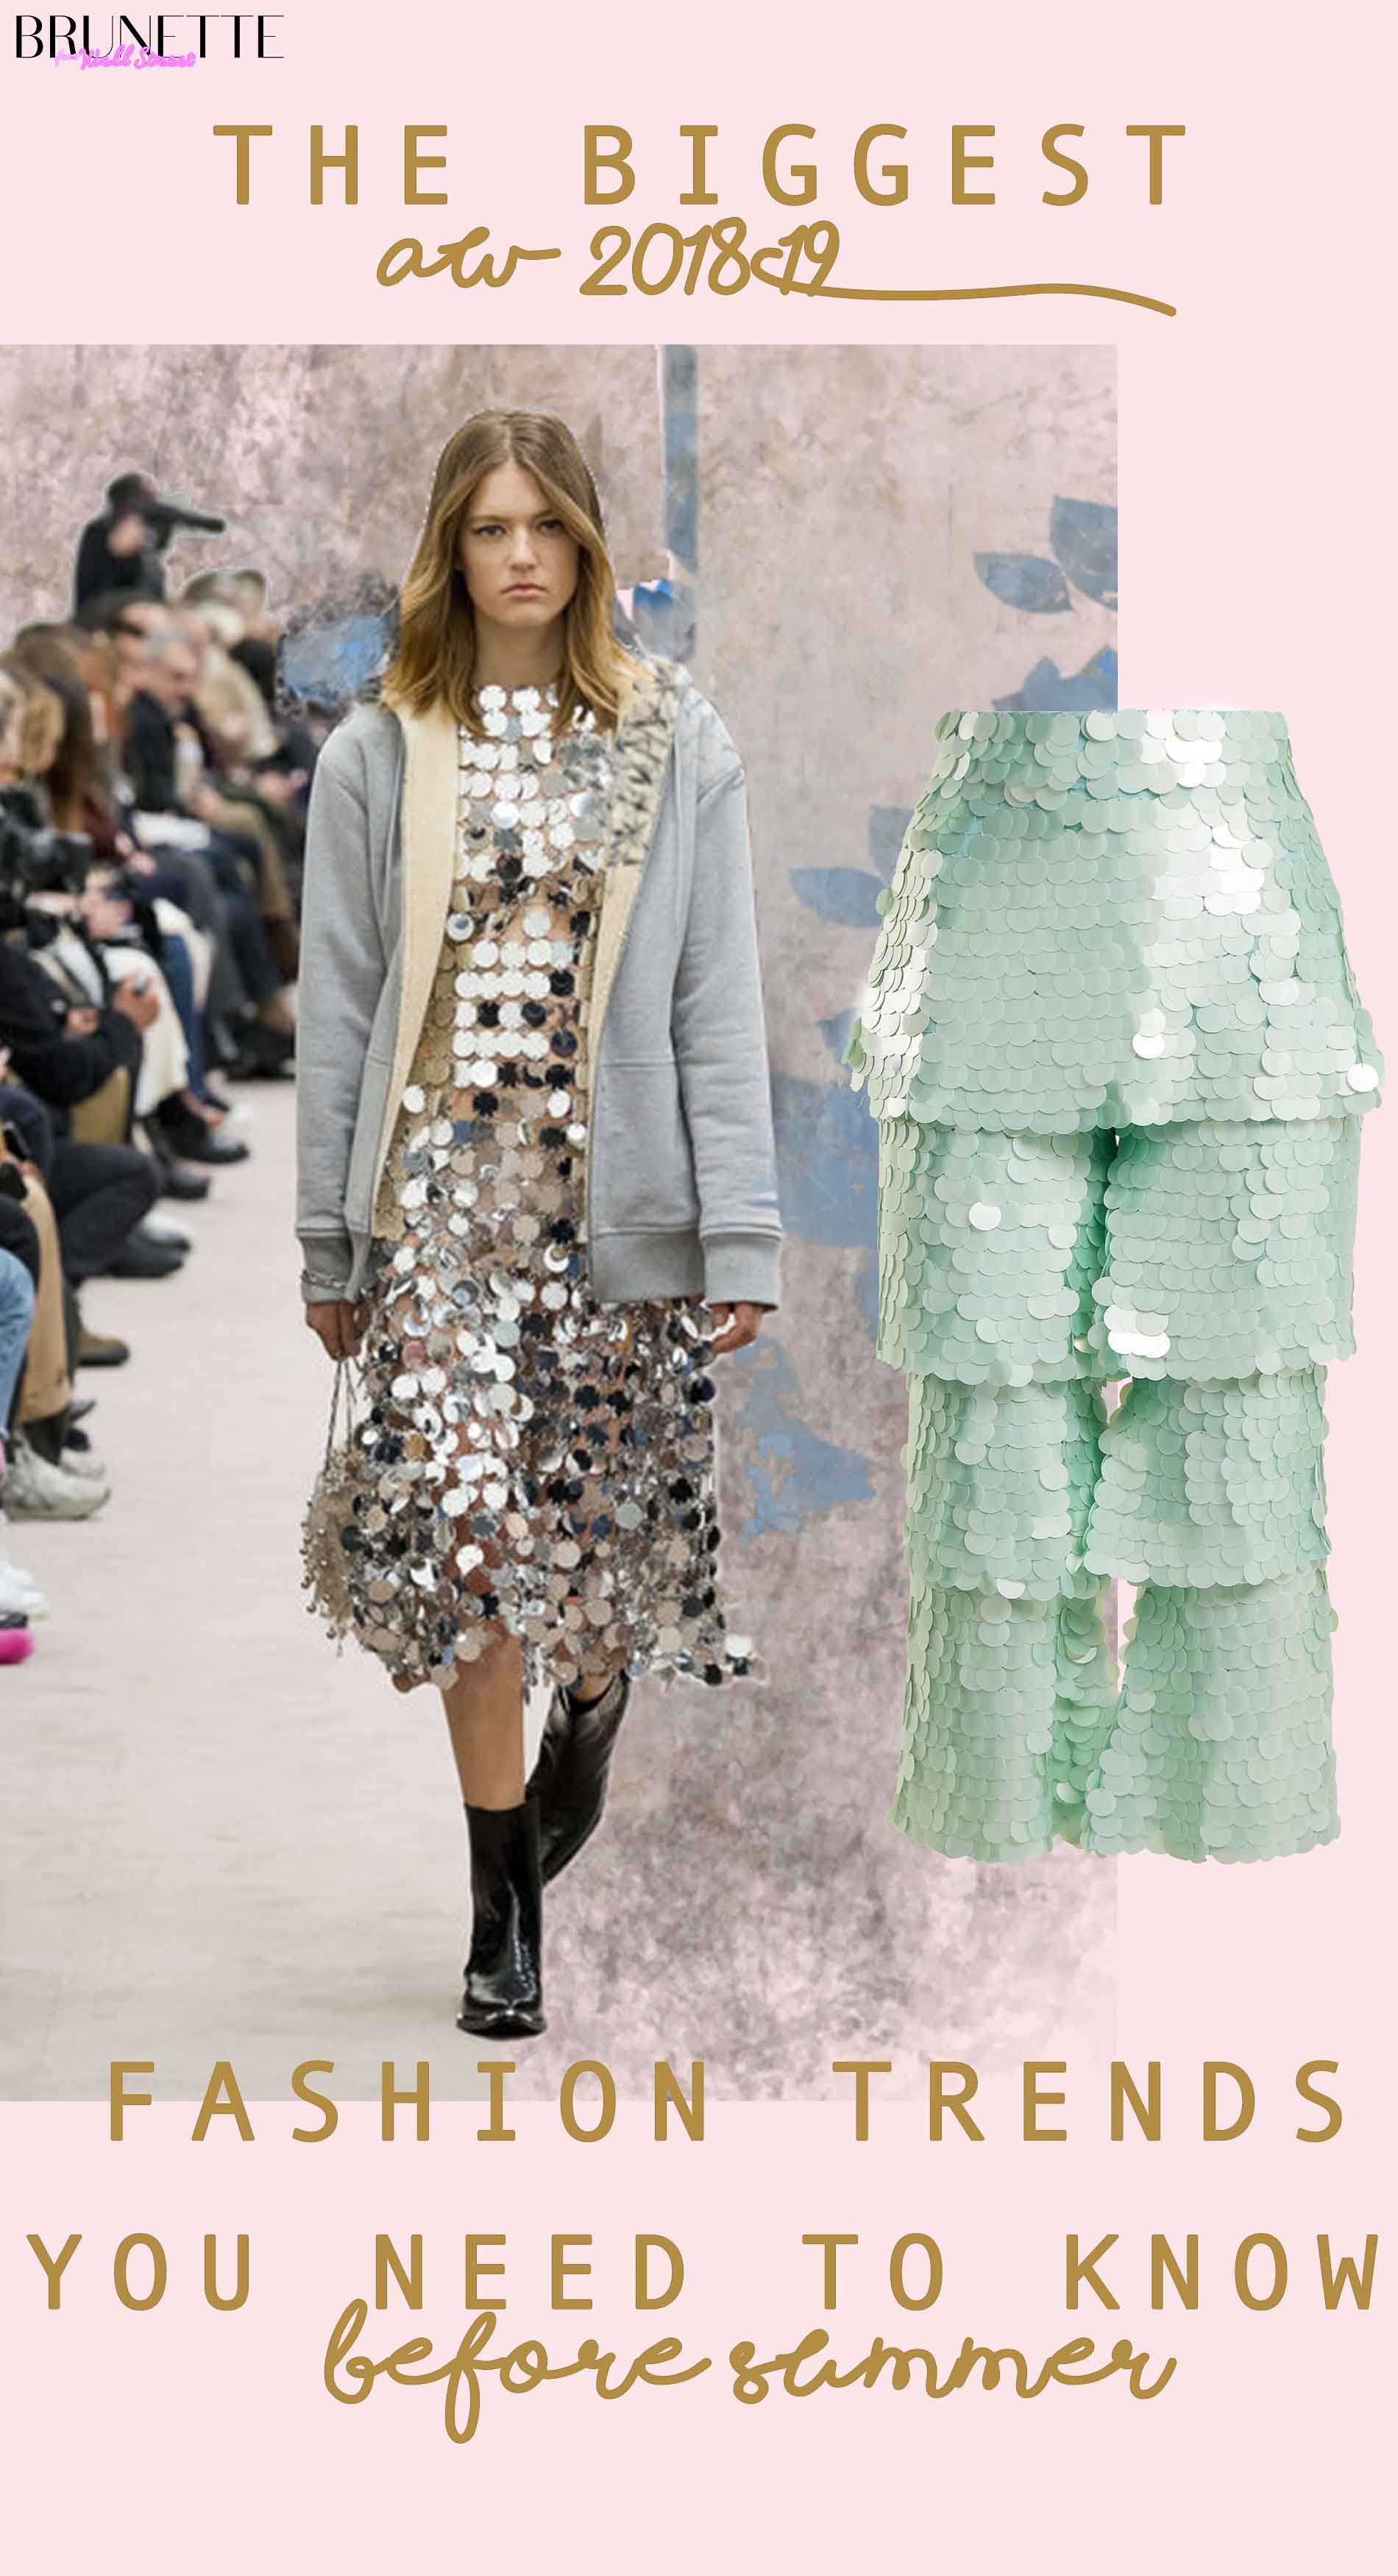 Sequin pants and Paco Rabanne runway photo with text overlay The biggest AW 2018-19 Fashion Trends You Need to Know before summer